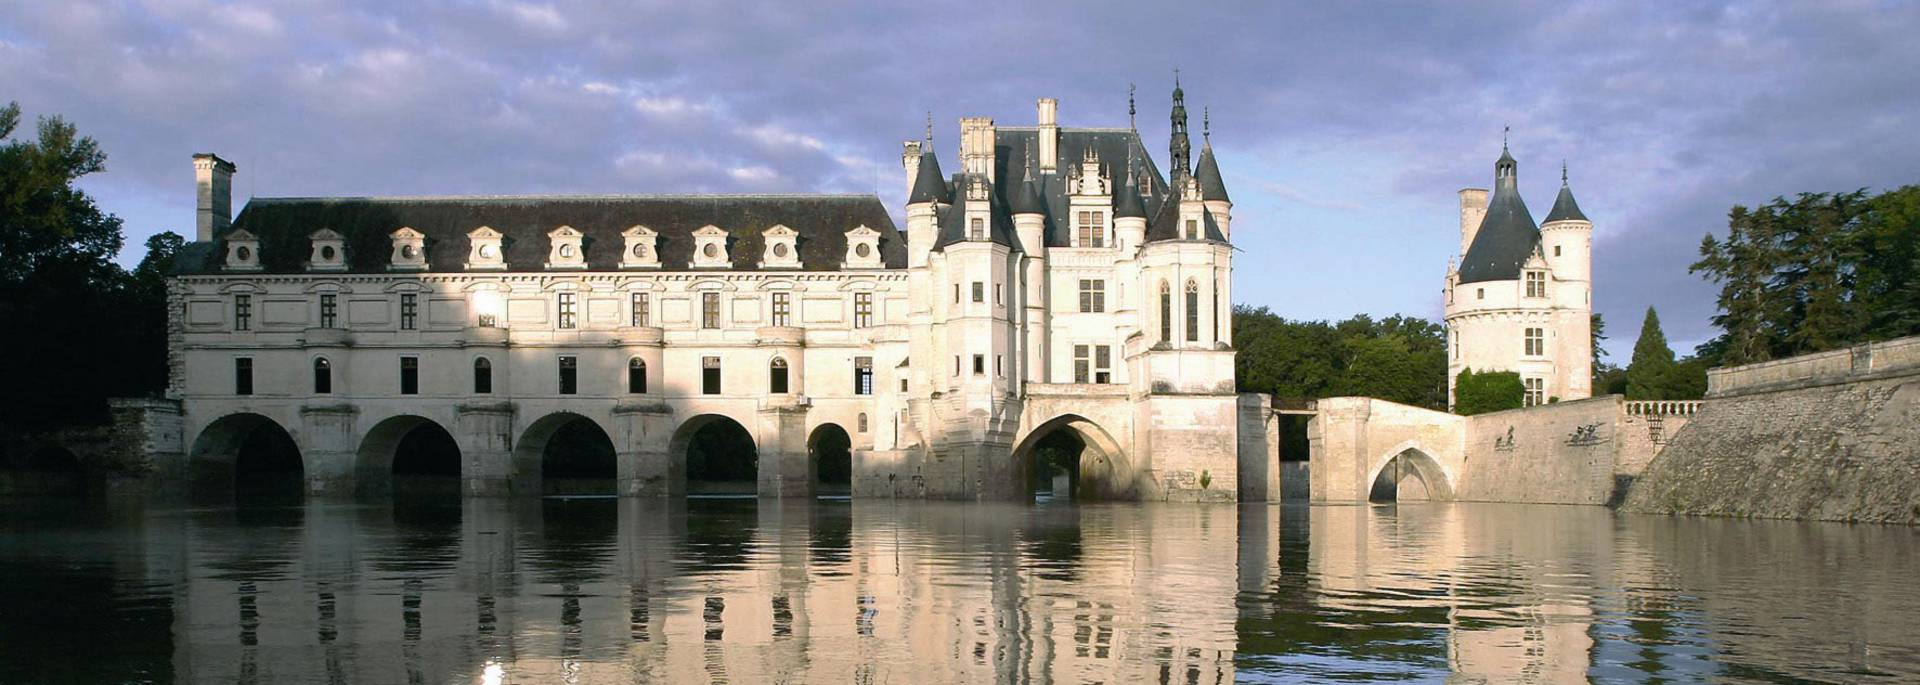 The Château de Chenonceau on the river Cher